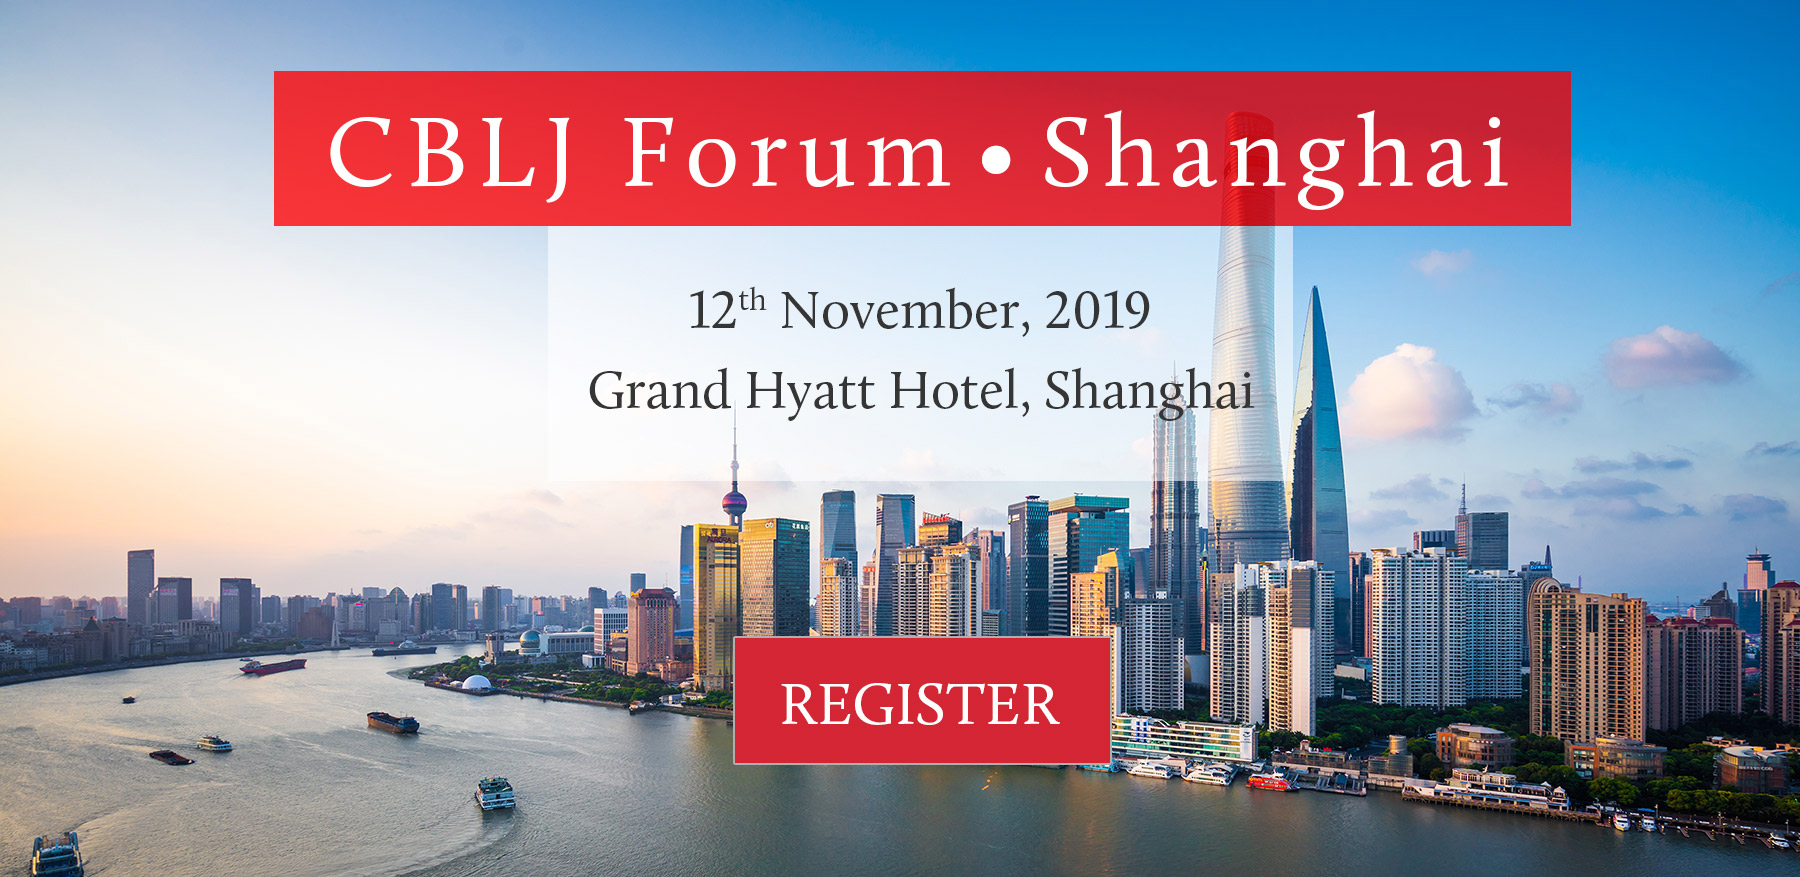 Shanghai-leading-lawyers-law-firms-cross-border-investment-CBLJ-Forum-0925-Spot